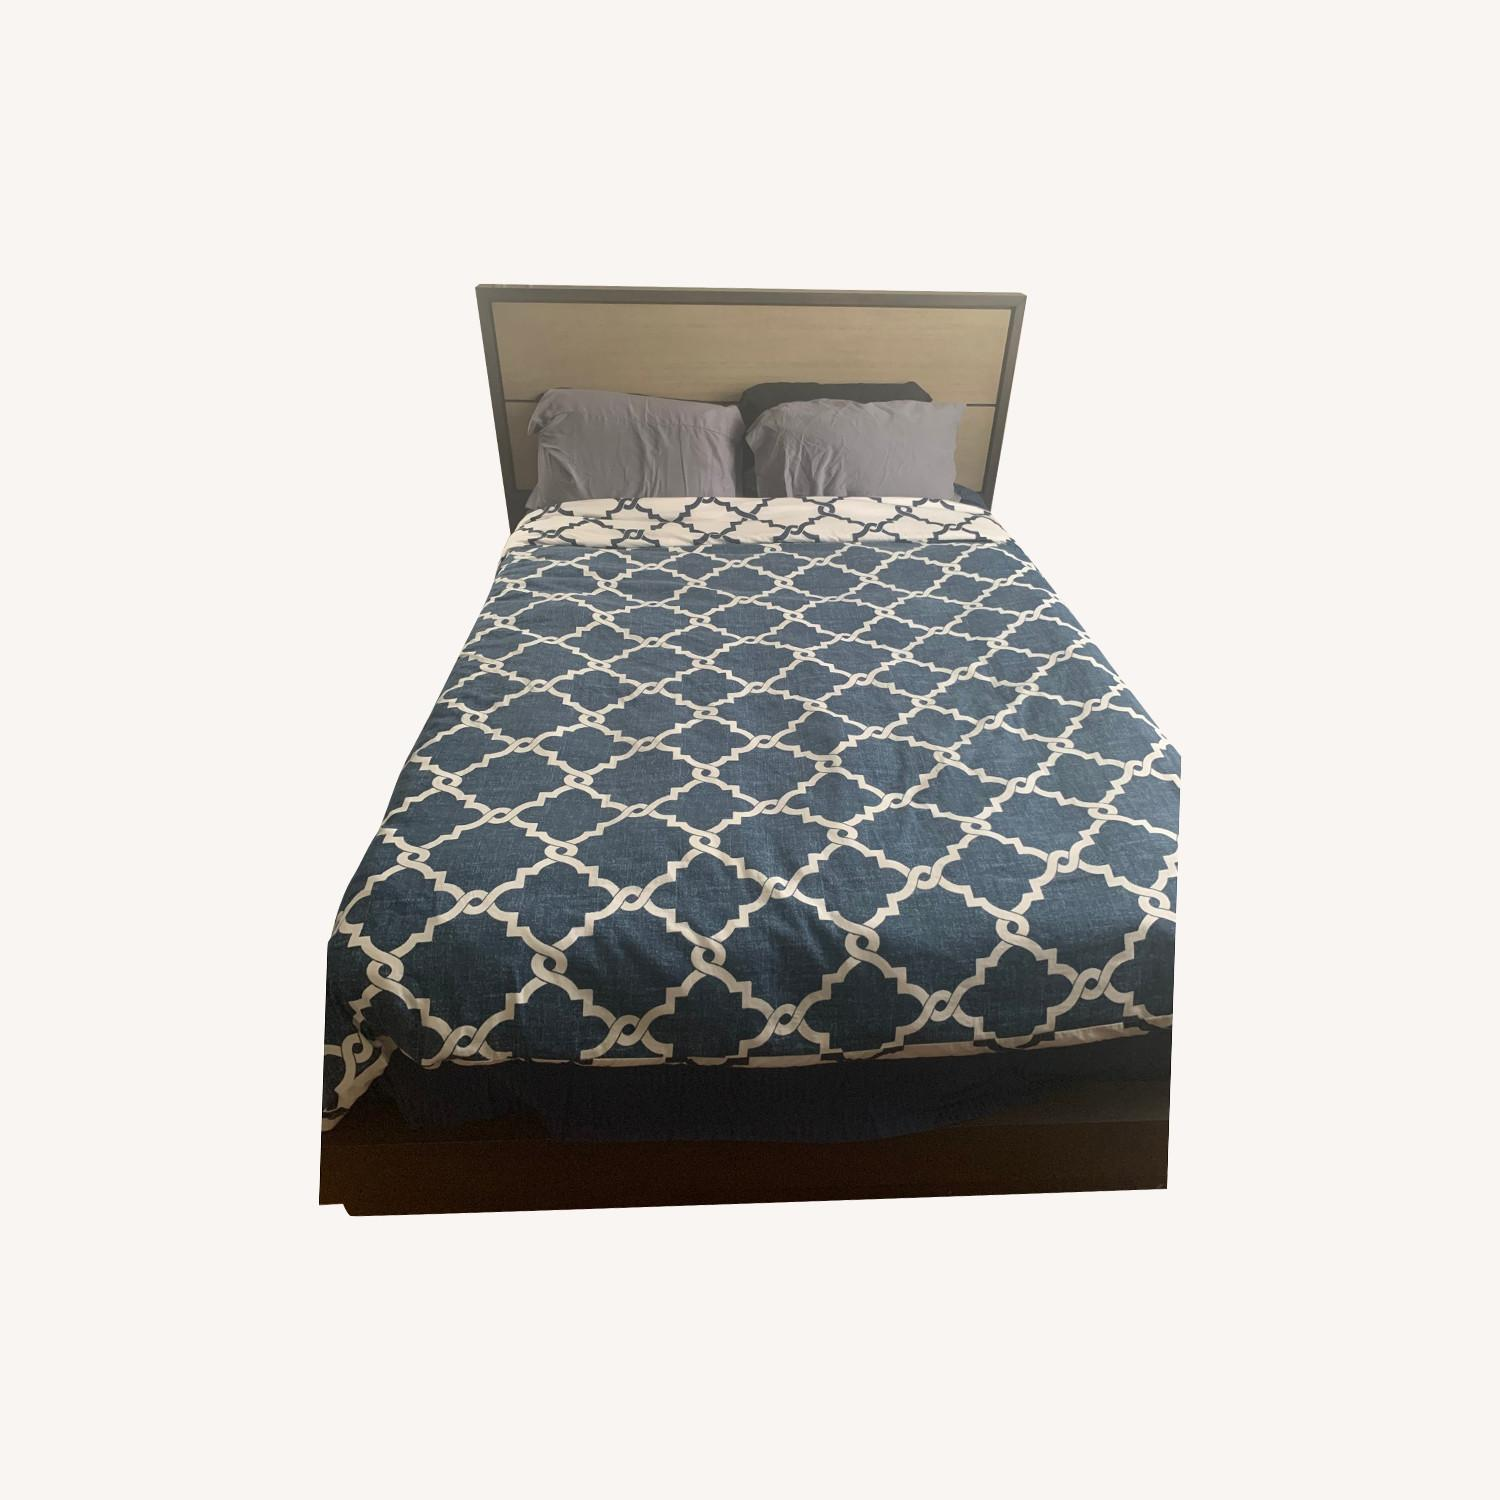 Macy's Queen Size Tribeca Bed Frame - image-0